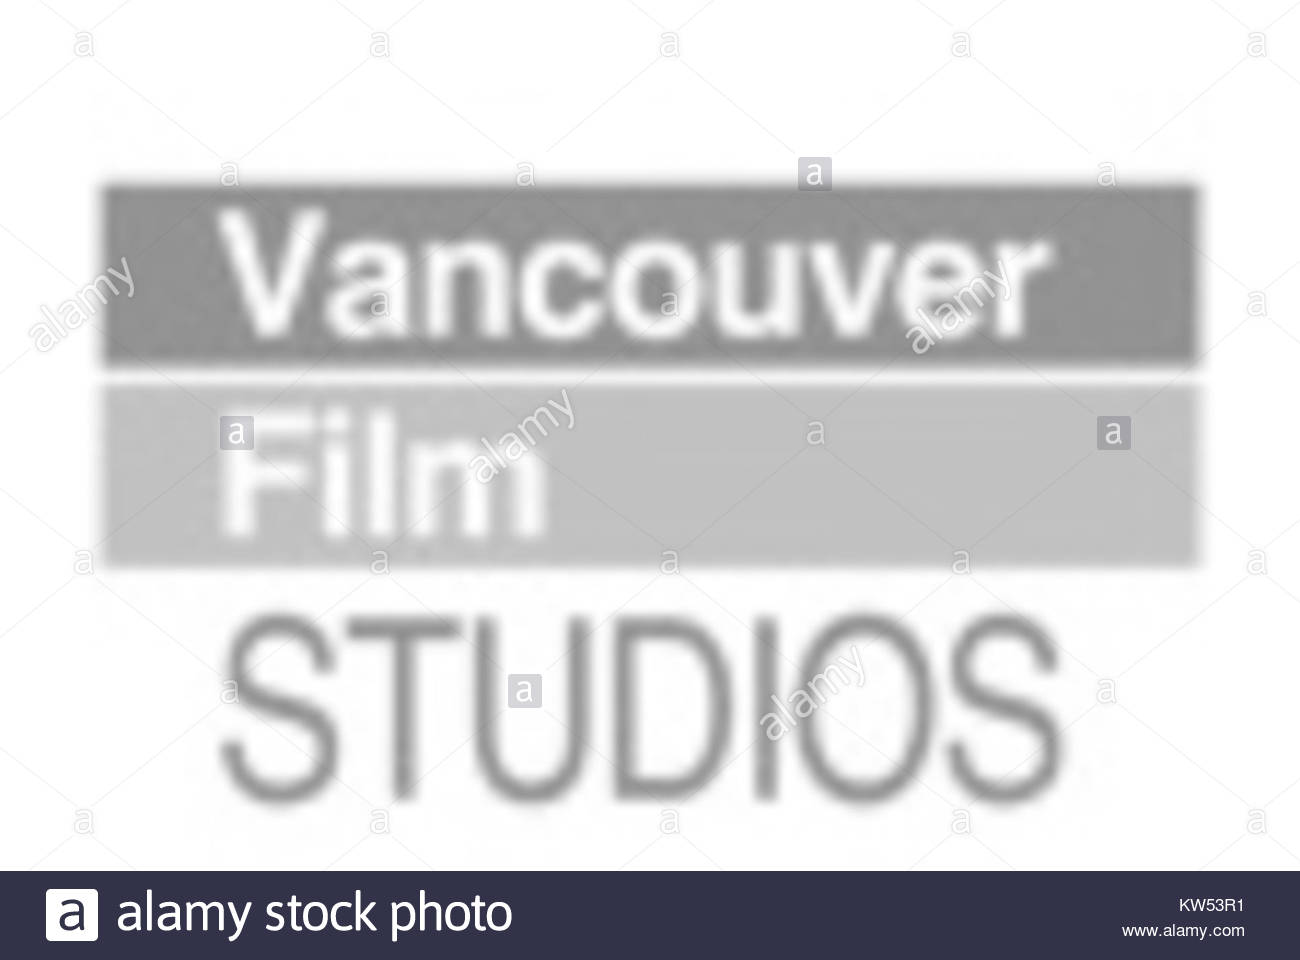 Vfs Stock Photos & Vfs Stock Images - Alamy